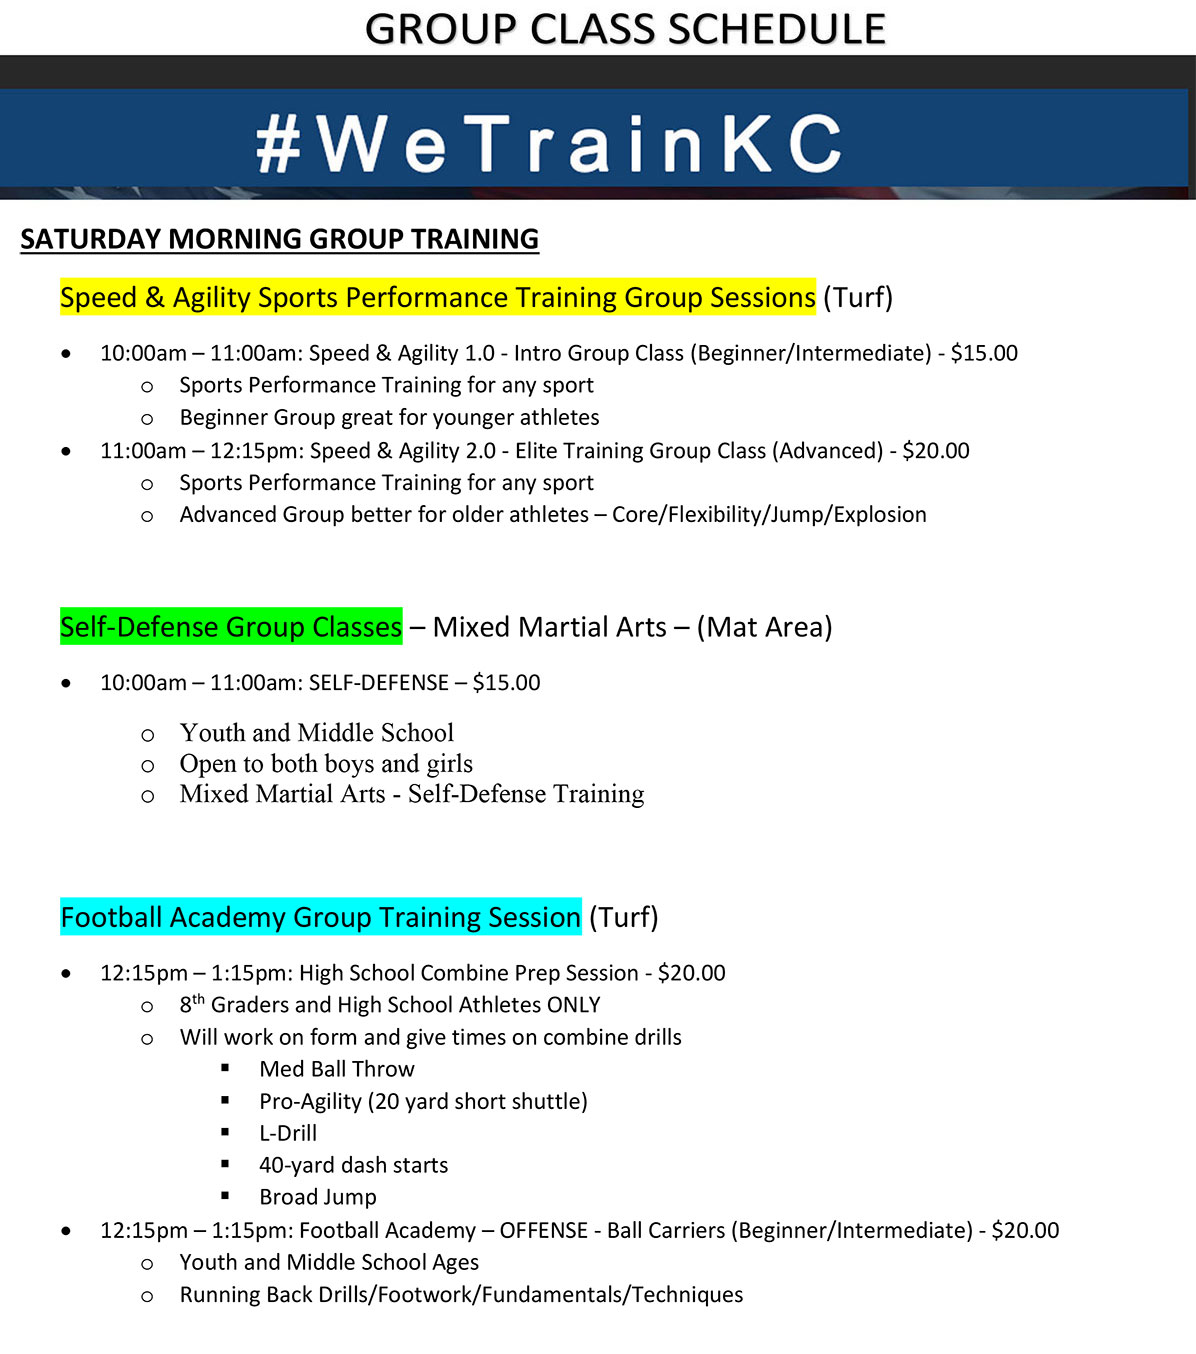 Saturday Group Class Training Schedule at Kansas City Athlete Training in Kansas City Missouri offering Sports Performance Training for girls and boys youth, middle school and high school